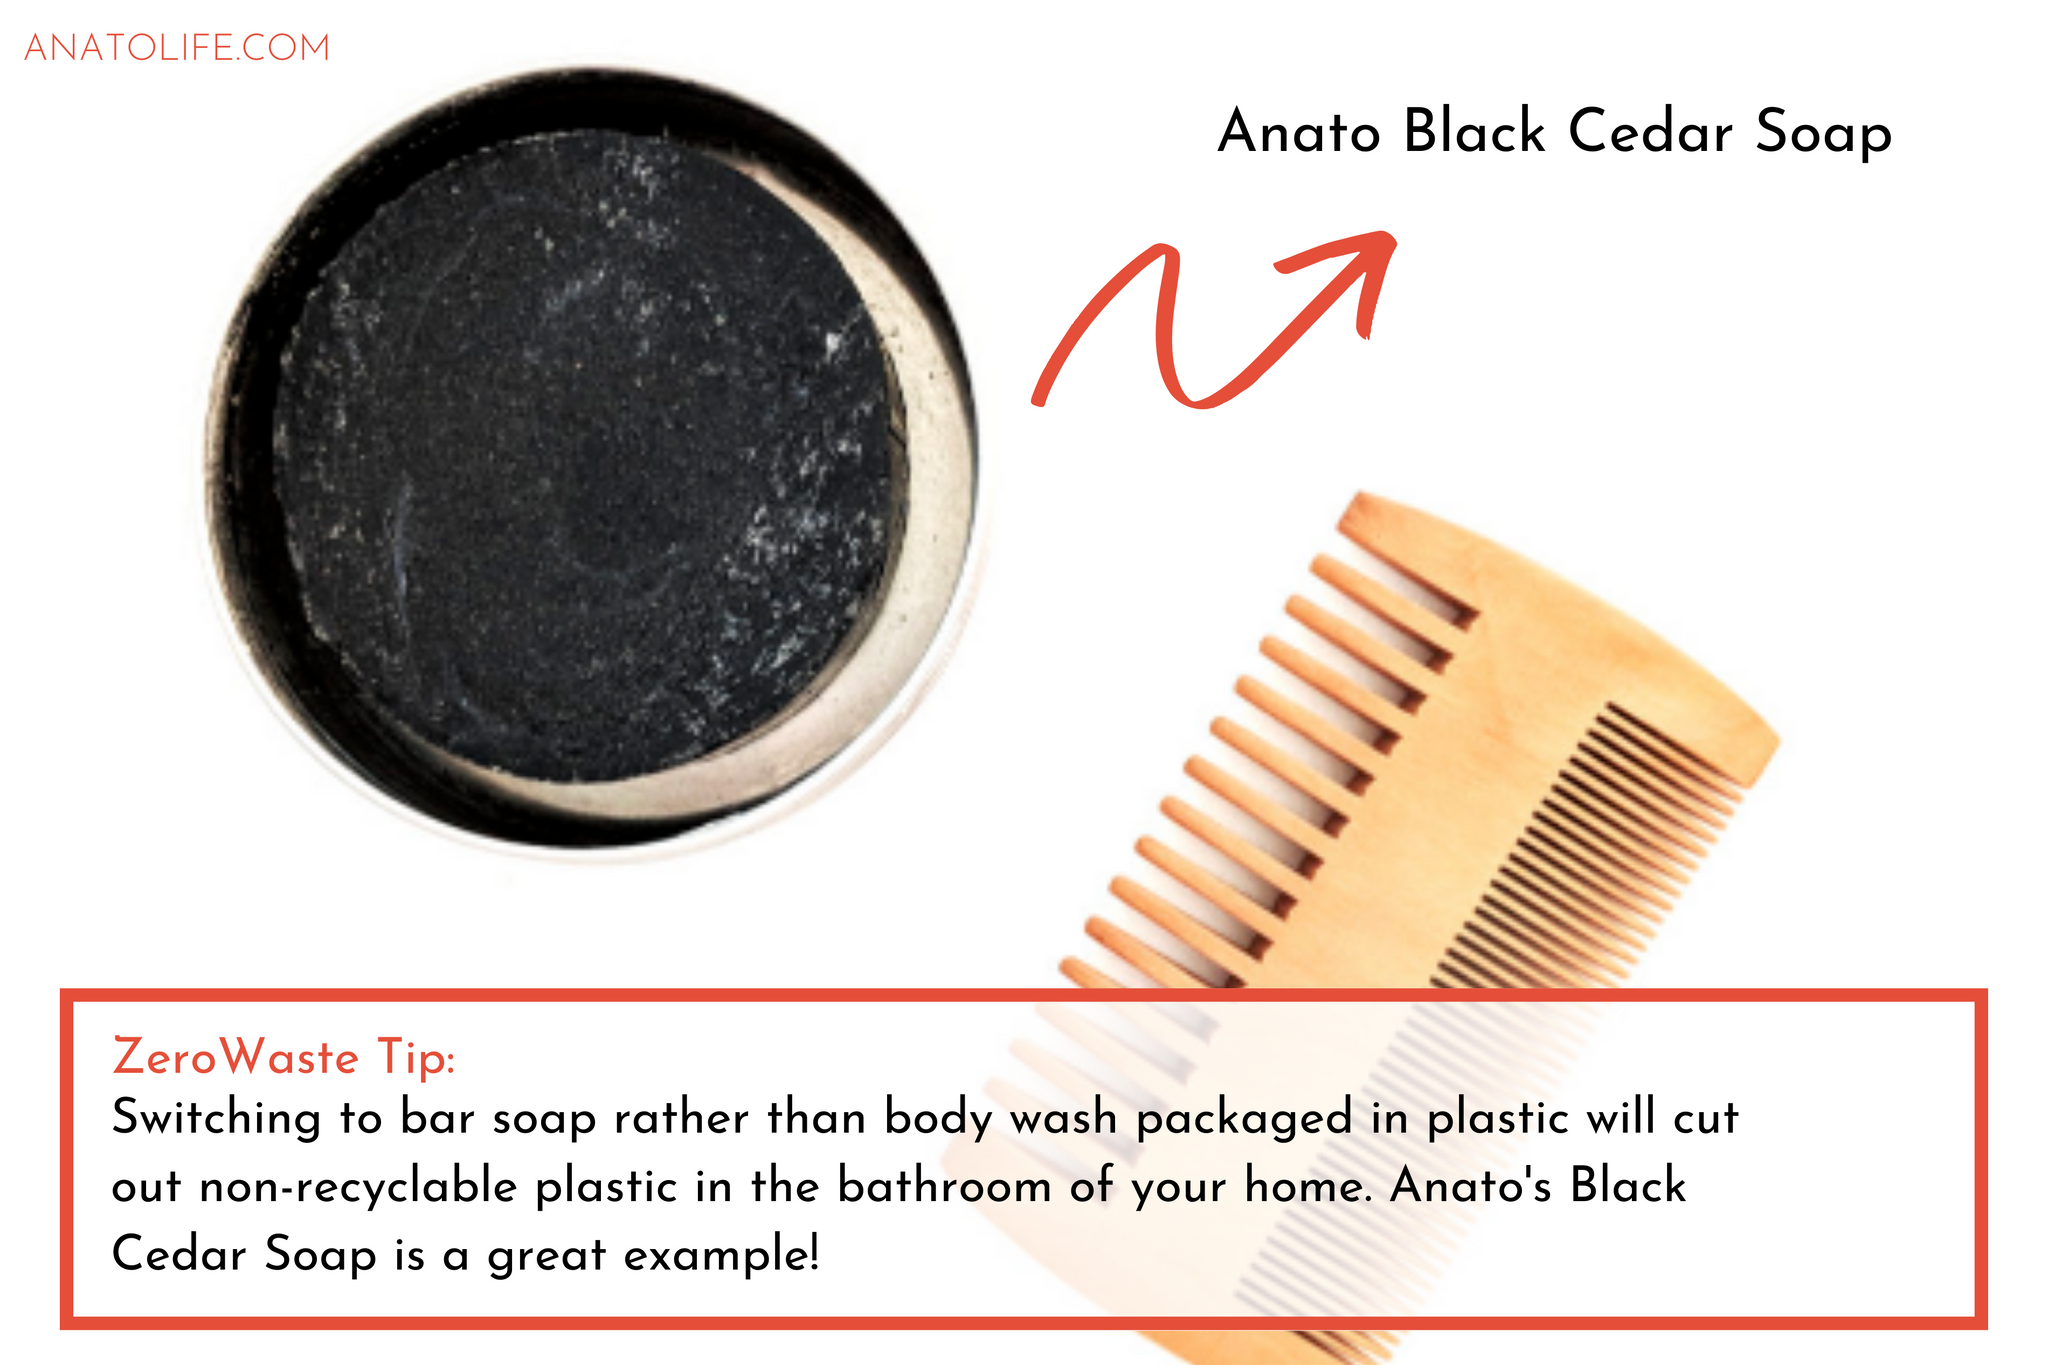 Anato Black Cedar Soap | ANATO LIFE regenerative_zero waste skincare from trees